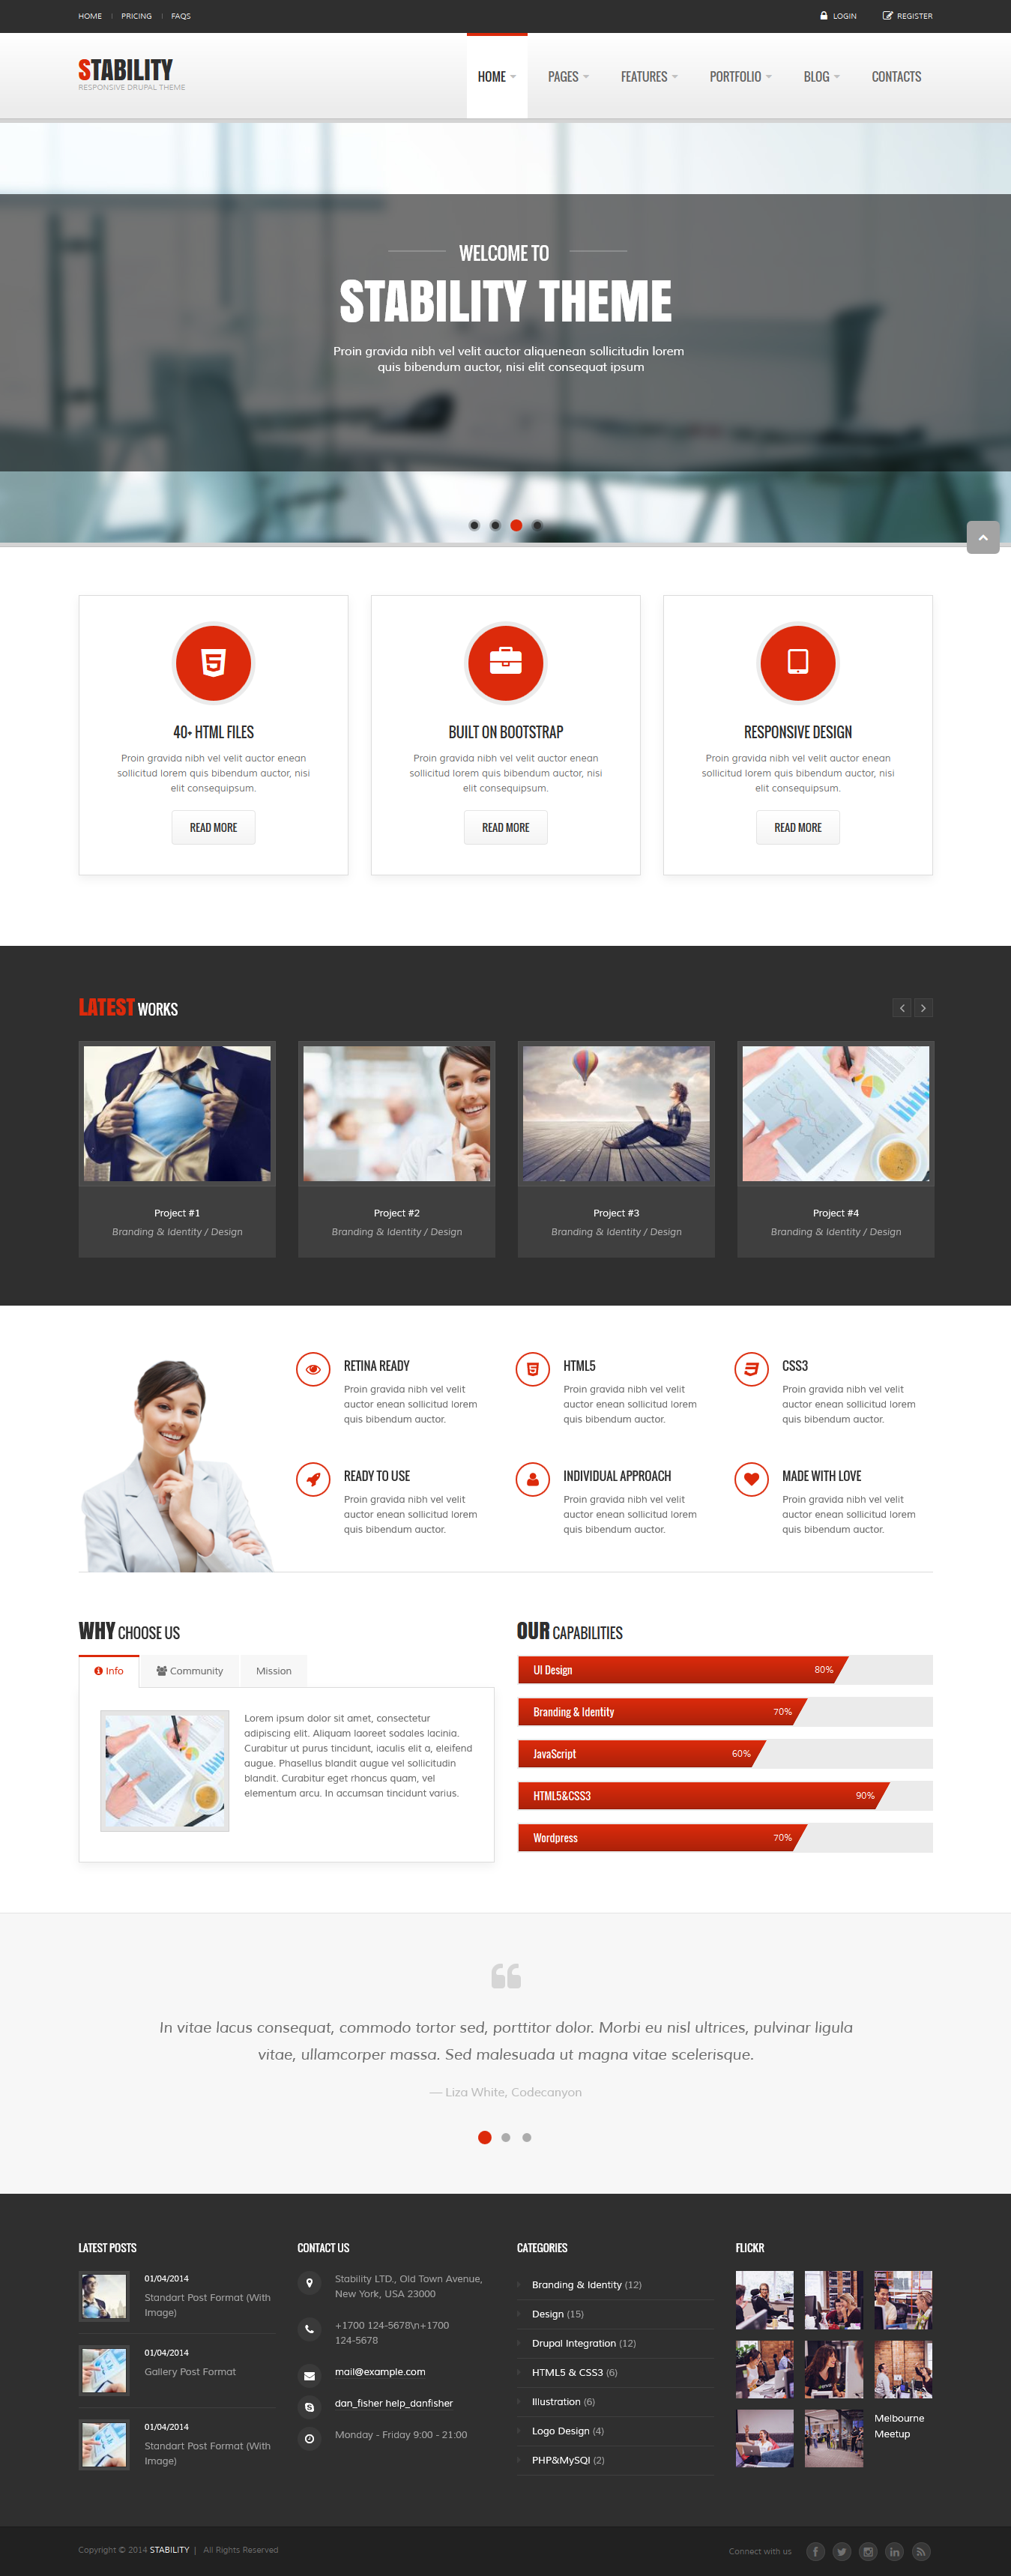 Stability Is A Clean Multipurpose And Responsive Theme It Is Suitable For Your Corporate Business Sites A Creative Agency Or A Portfolio Proje Com Imagens